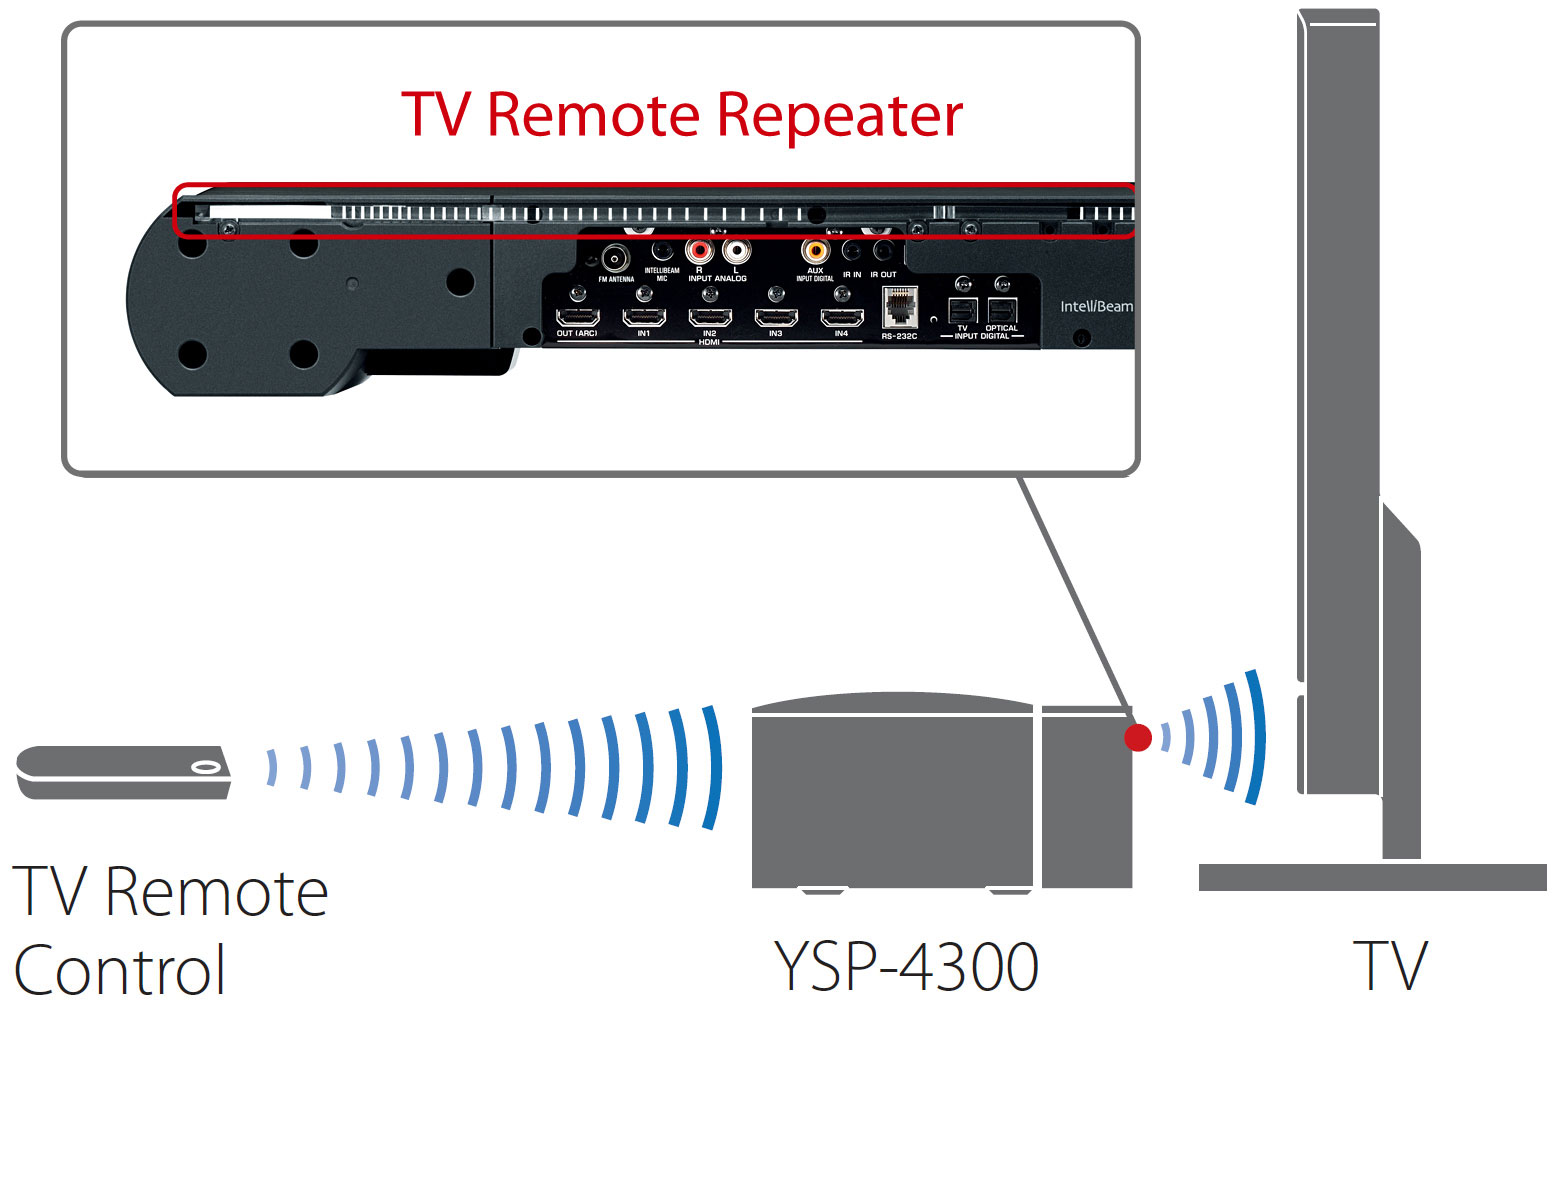 TV Remote Repeater